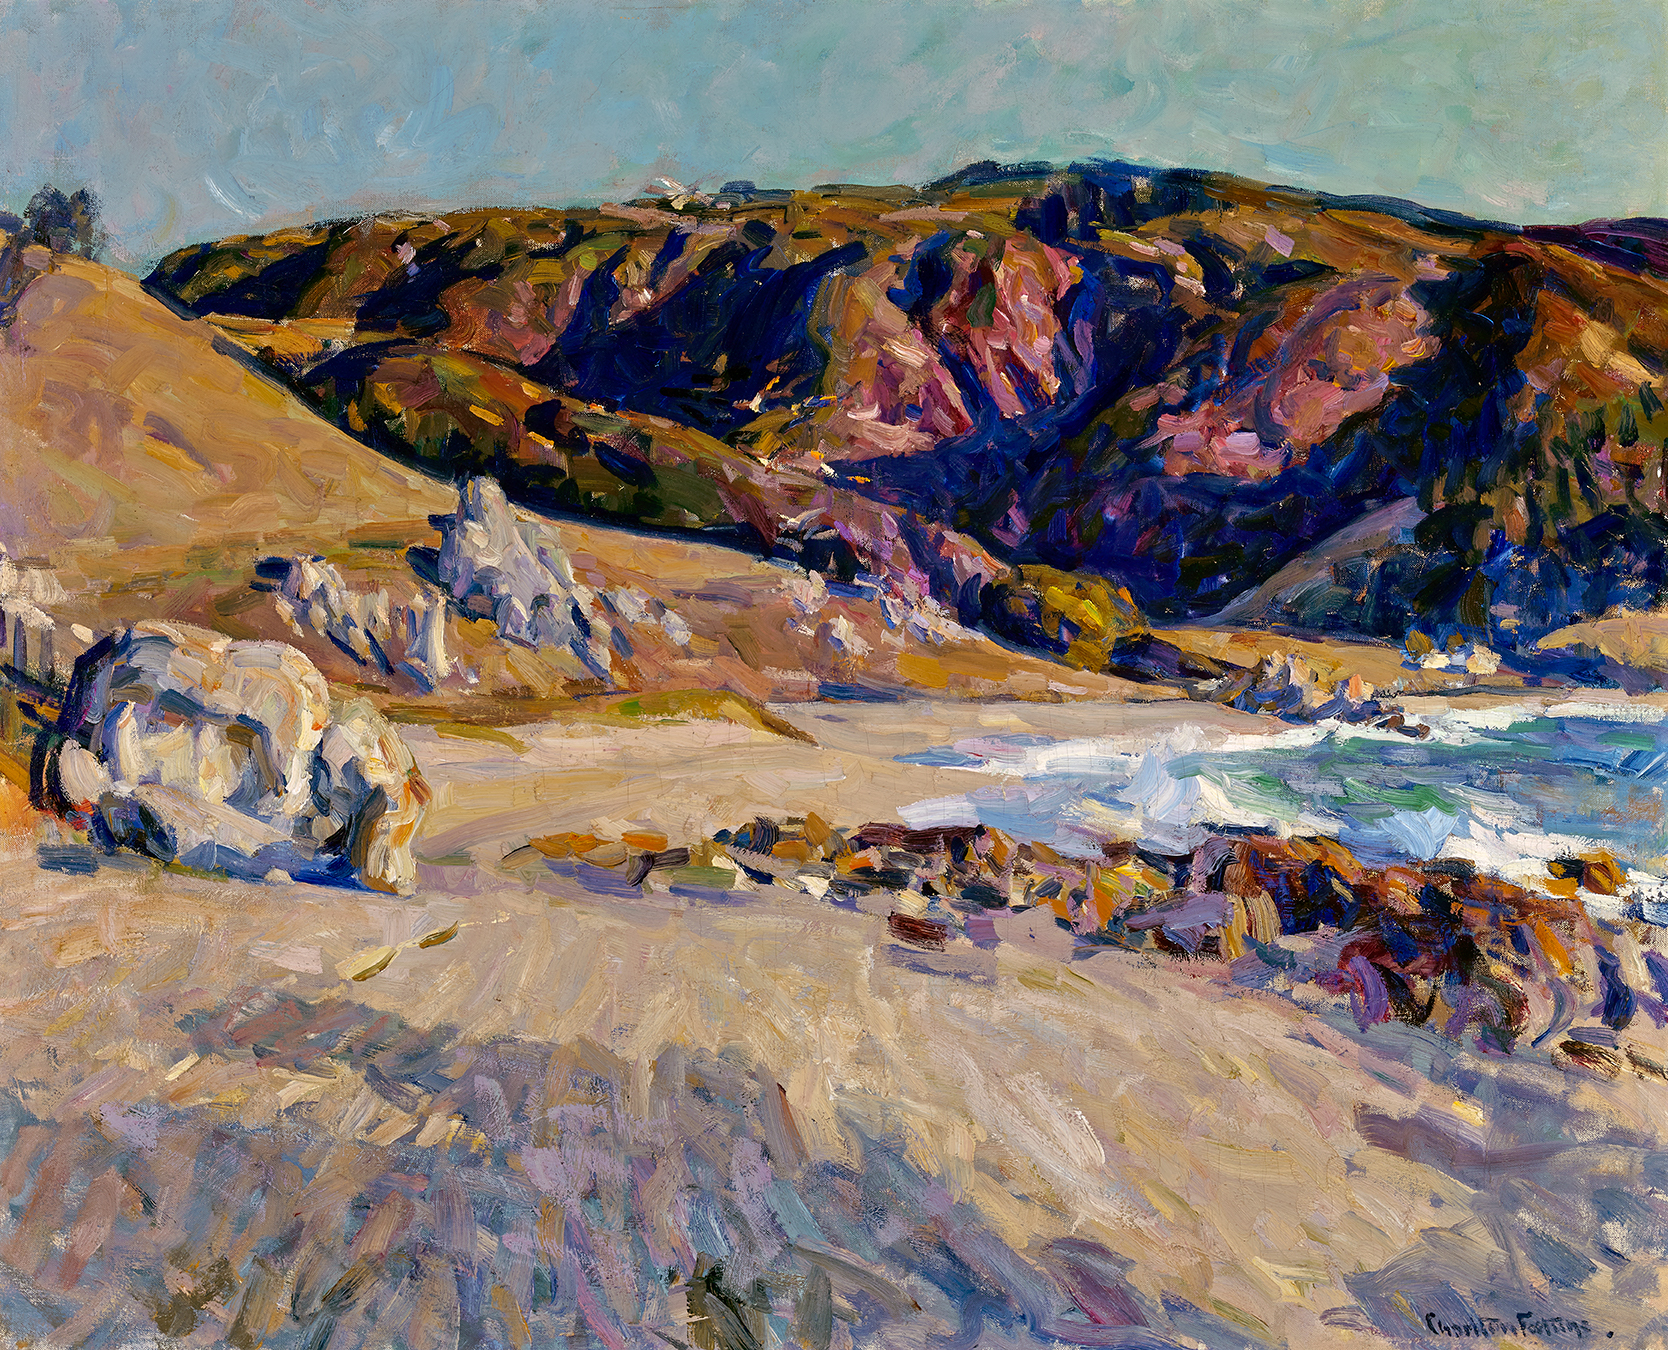 E. Charlton Fortune, The Lonely Shore, c. 1918. Oil on canvas, 31 1/4 x 39 1/4 inches. Collection of W. Donald Head, Old Grandview Ranch, Saratoga, California